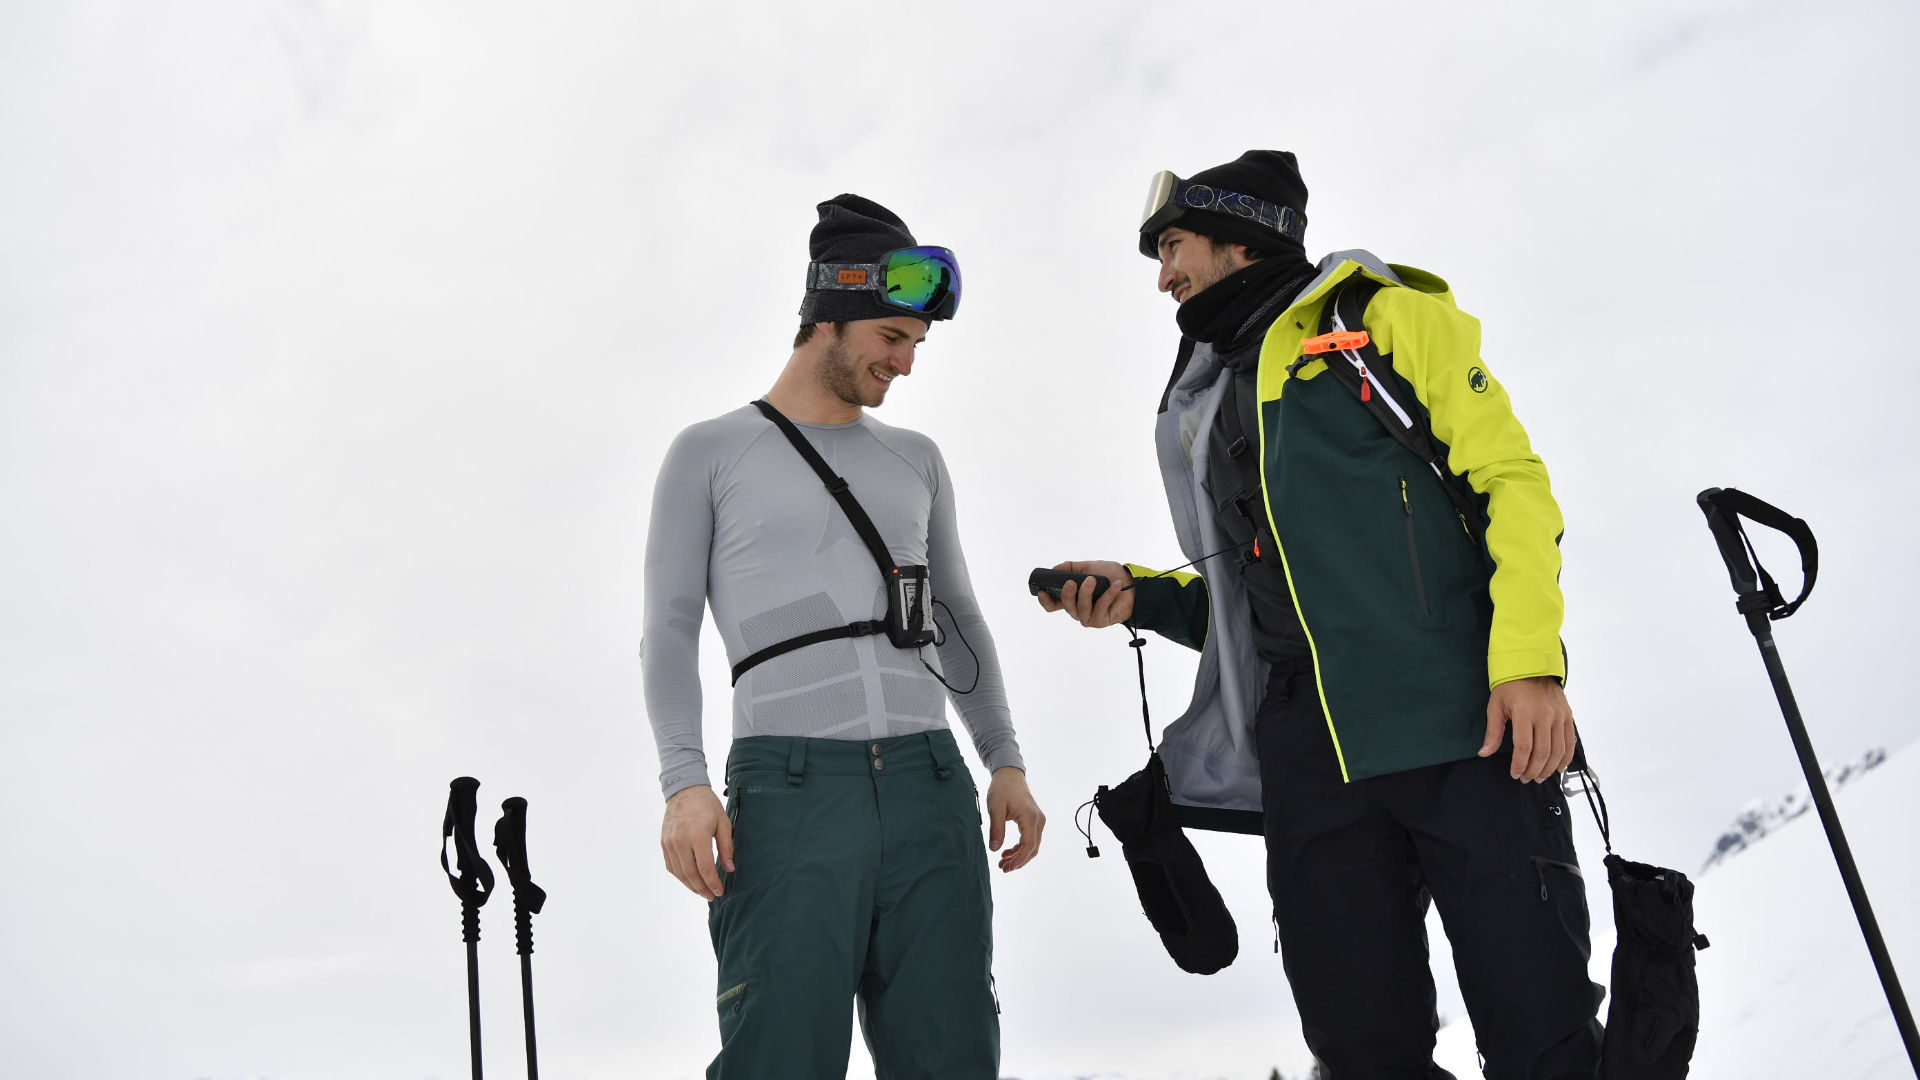 Two riders doing a transceiver check with 3-antenna models